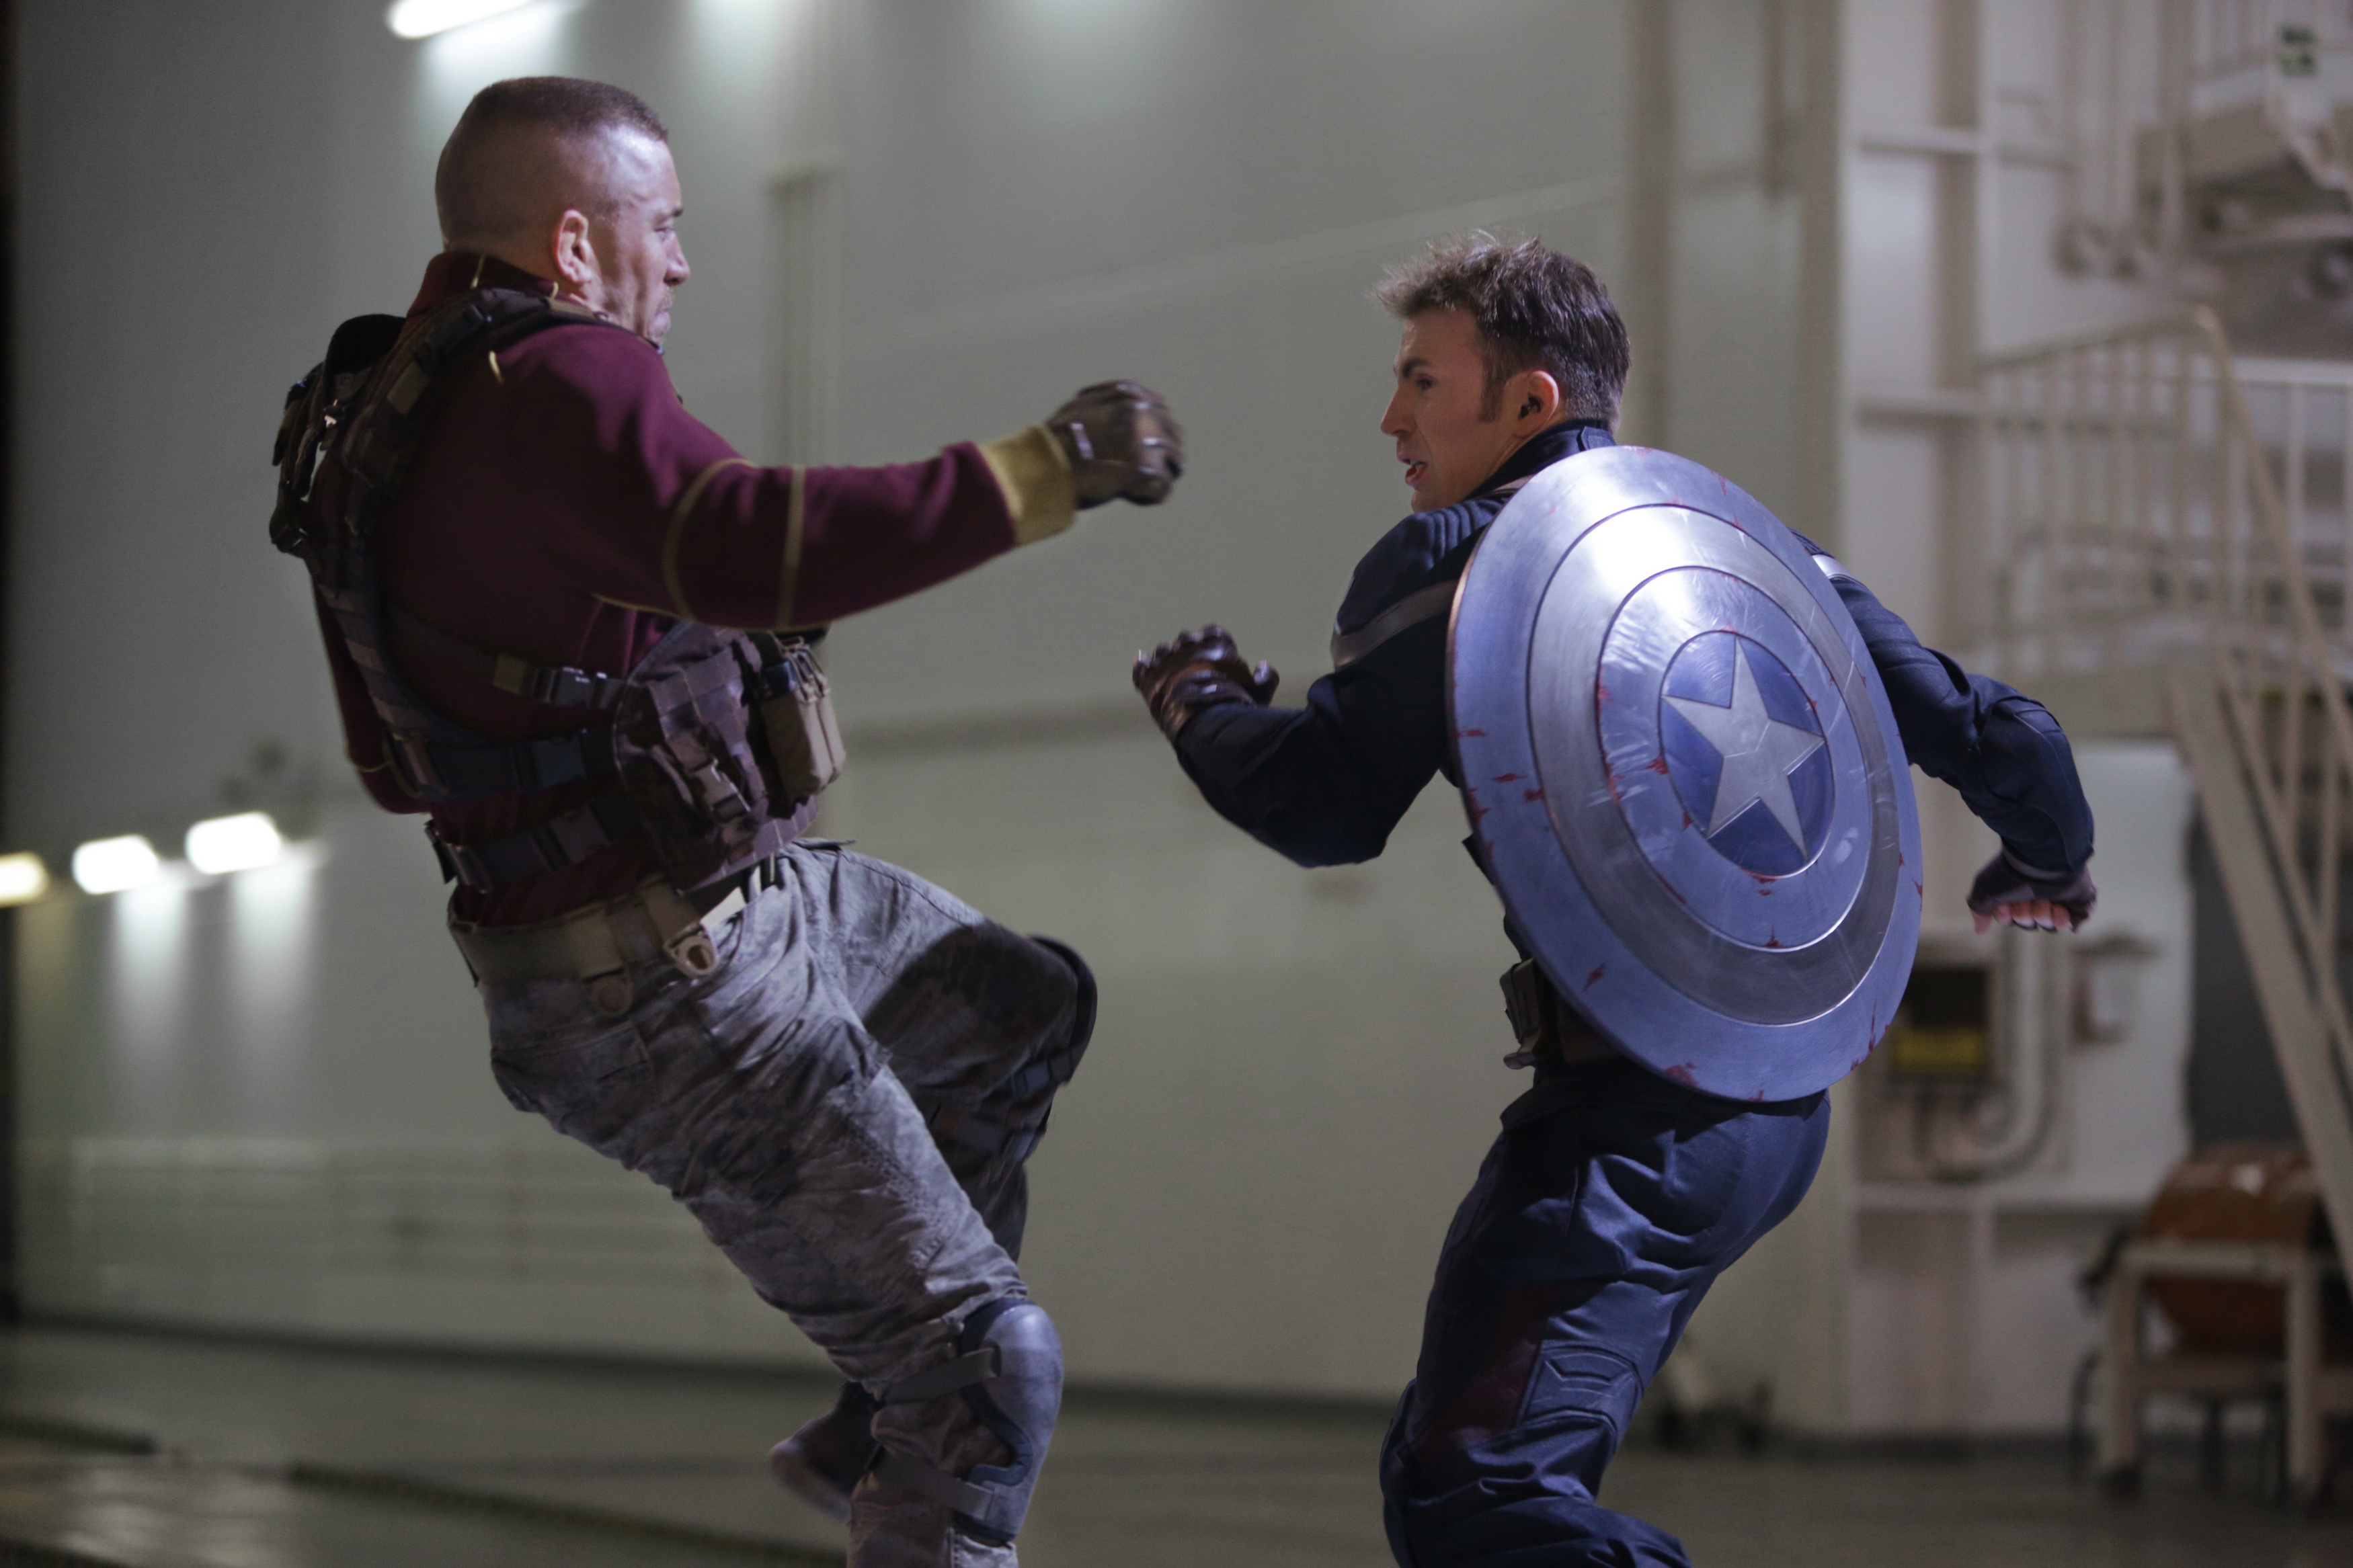 captain america the winter soldier,captain-america-the-winter-soldier-new-stills-,cheyan antwaune gray, cheyan gray, antwaune gray, thelifestyleelite,elite lifestyle, thelifestyleelitedotcom, thelifestyleelite.com,tlselite.com,TheLifeStyleElite.com,cheyan antwaune gray,fashion,models of thelifestyleelite.com, the life style elite,the lifestyle elite,elite lifestyle,lifestyleelite.com,cheyan gray,TLSElite,TLSElite.com,TLSEliteGaming,TLSElite Gaming